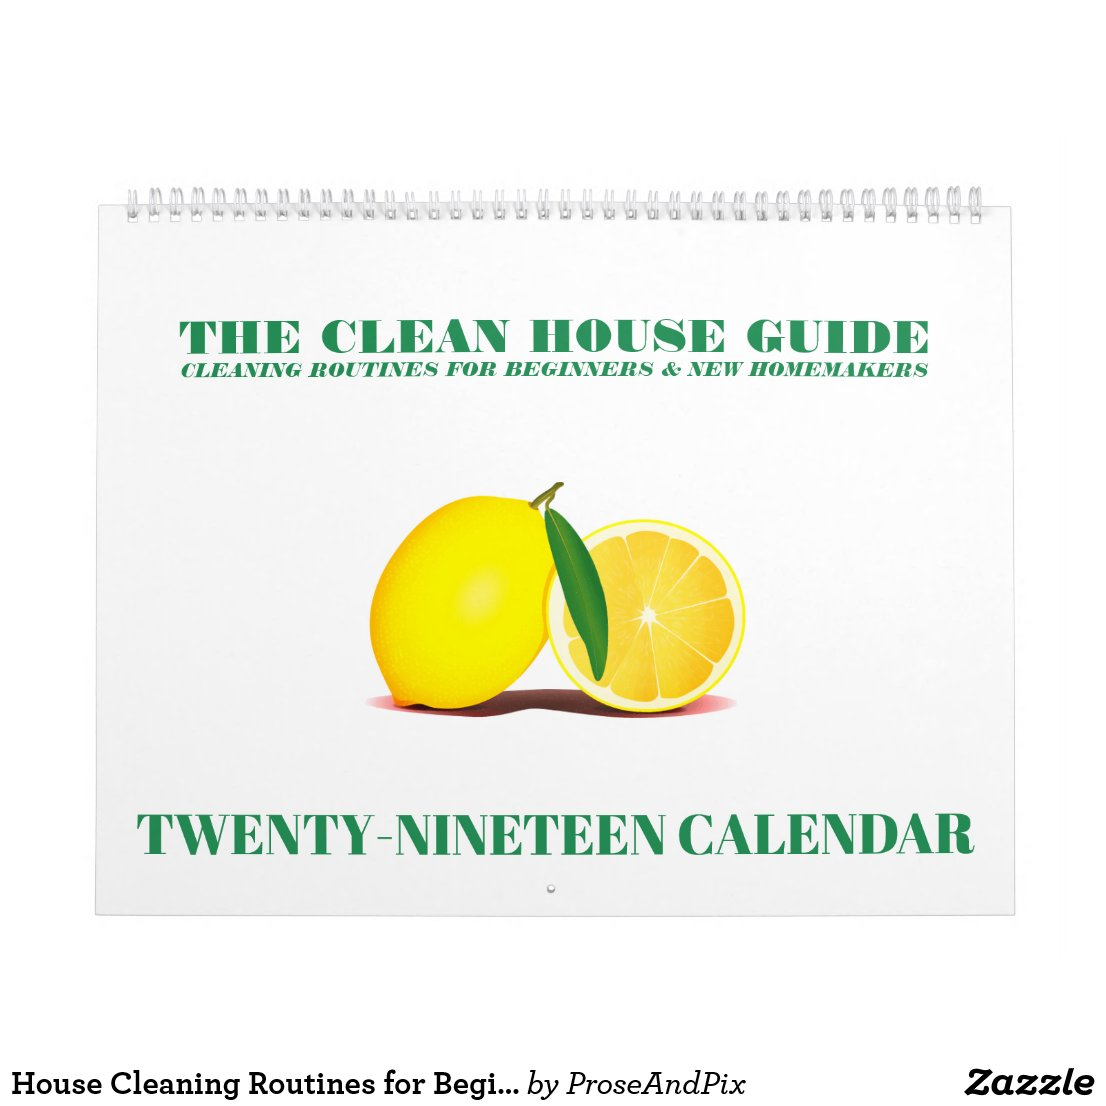 House Cleaning Routines for Beginners 2019 Calendar